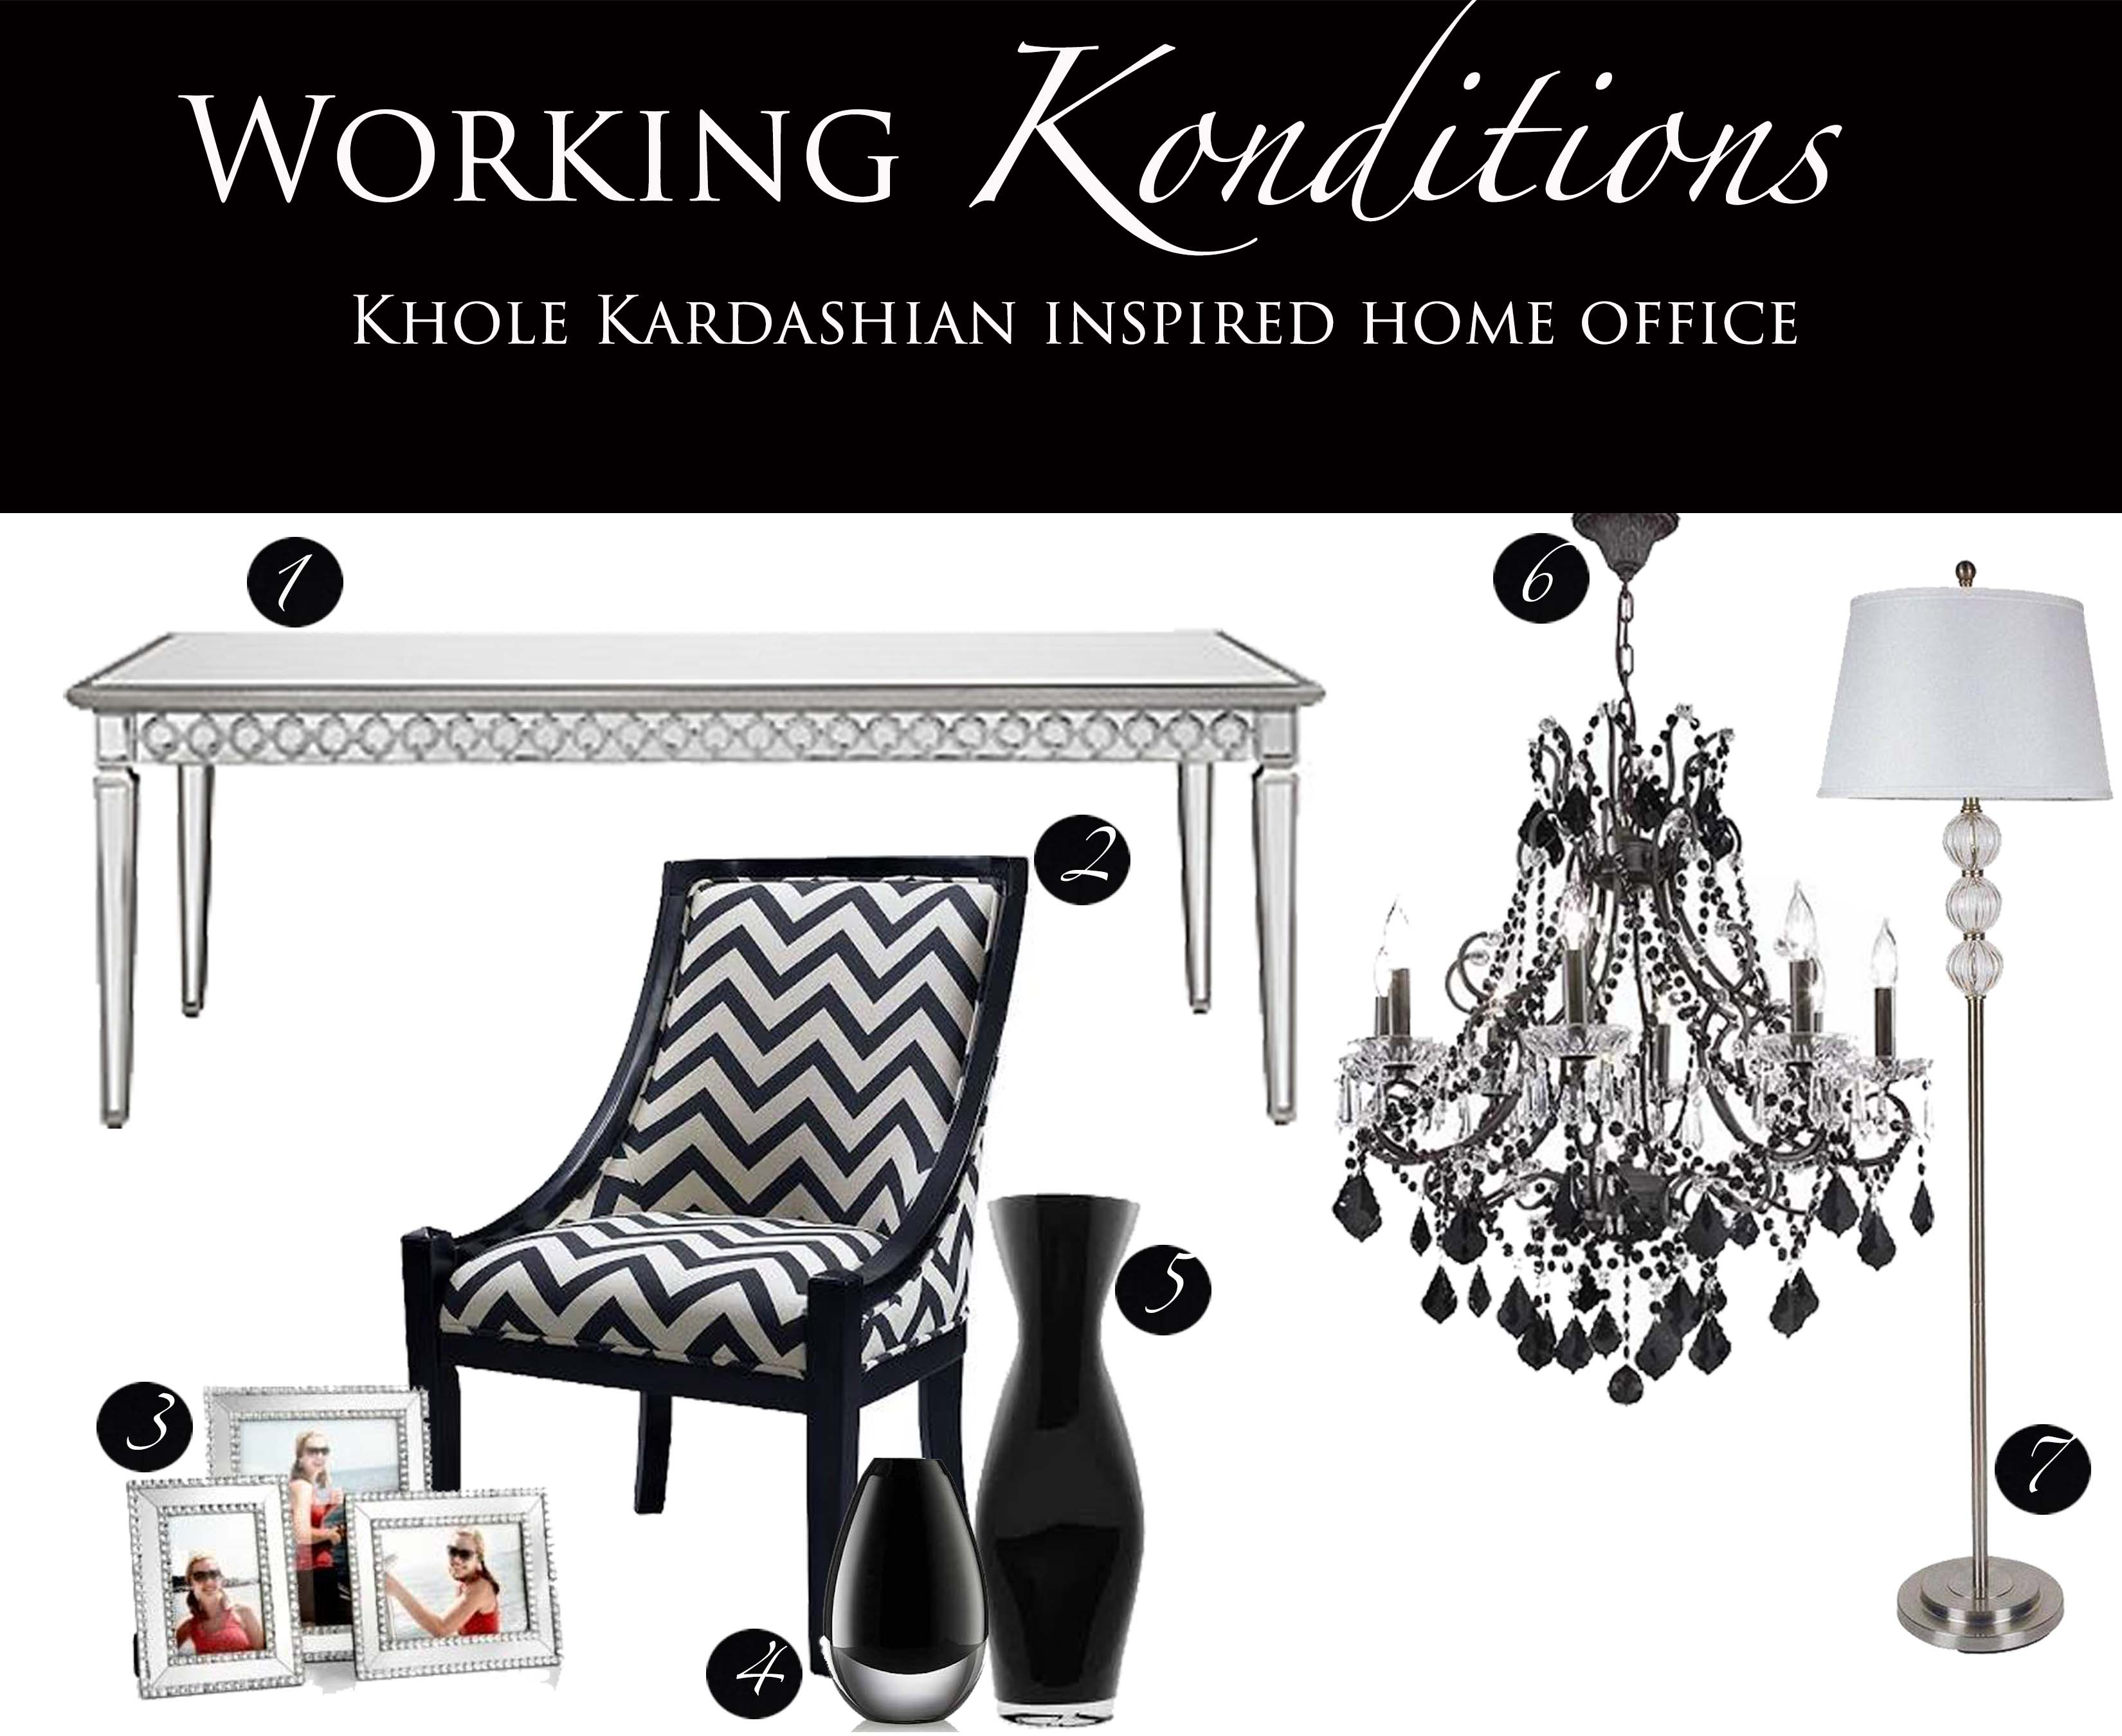 Working Konditions Khloe Kardashian Inspired Home Office